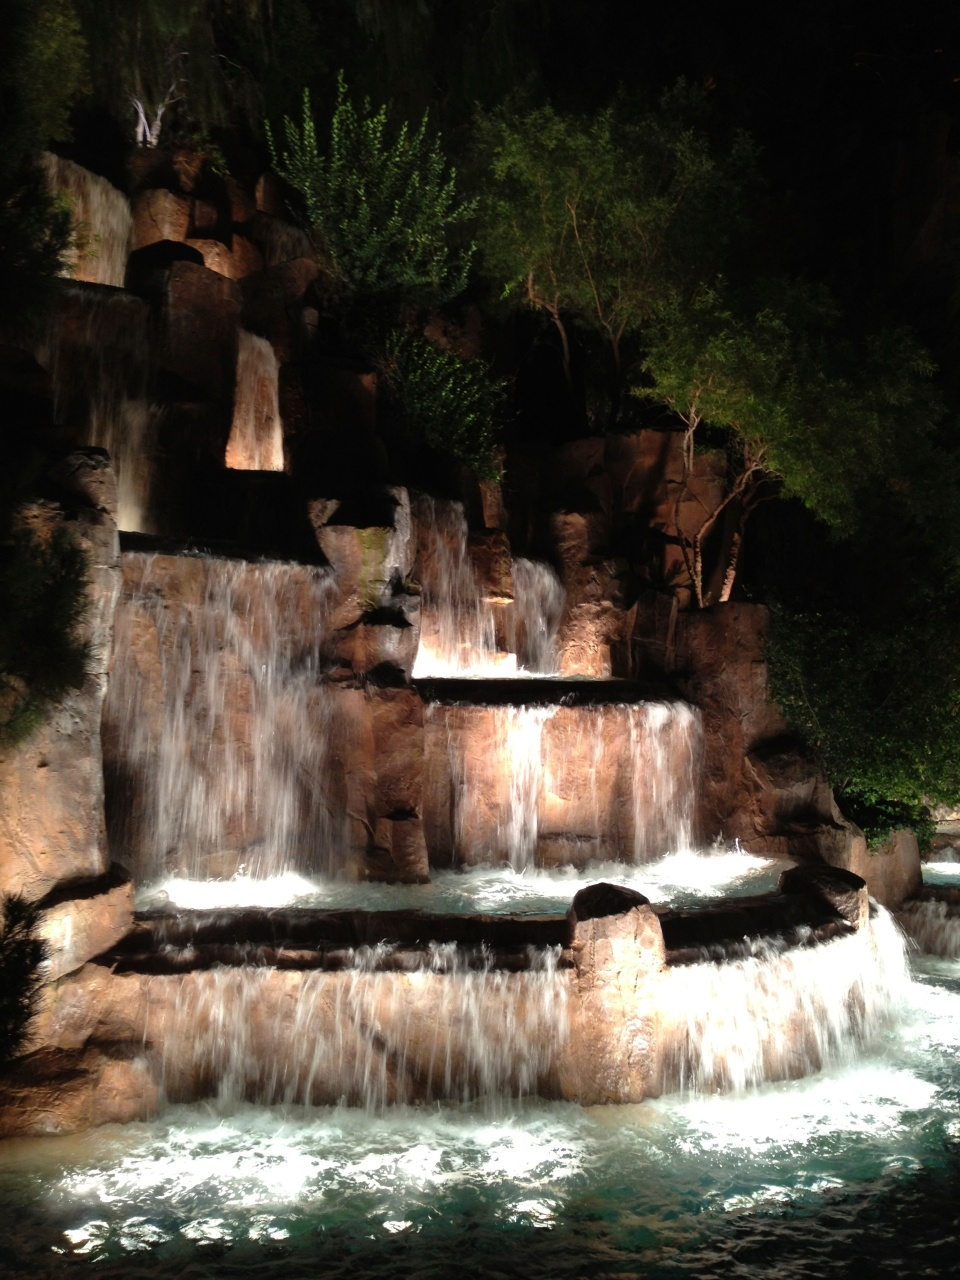 AN EVENING AT THE WYNN